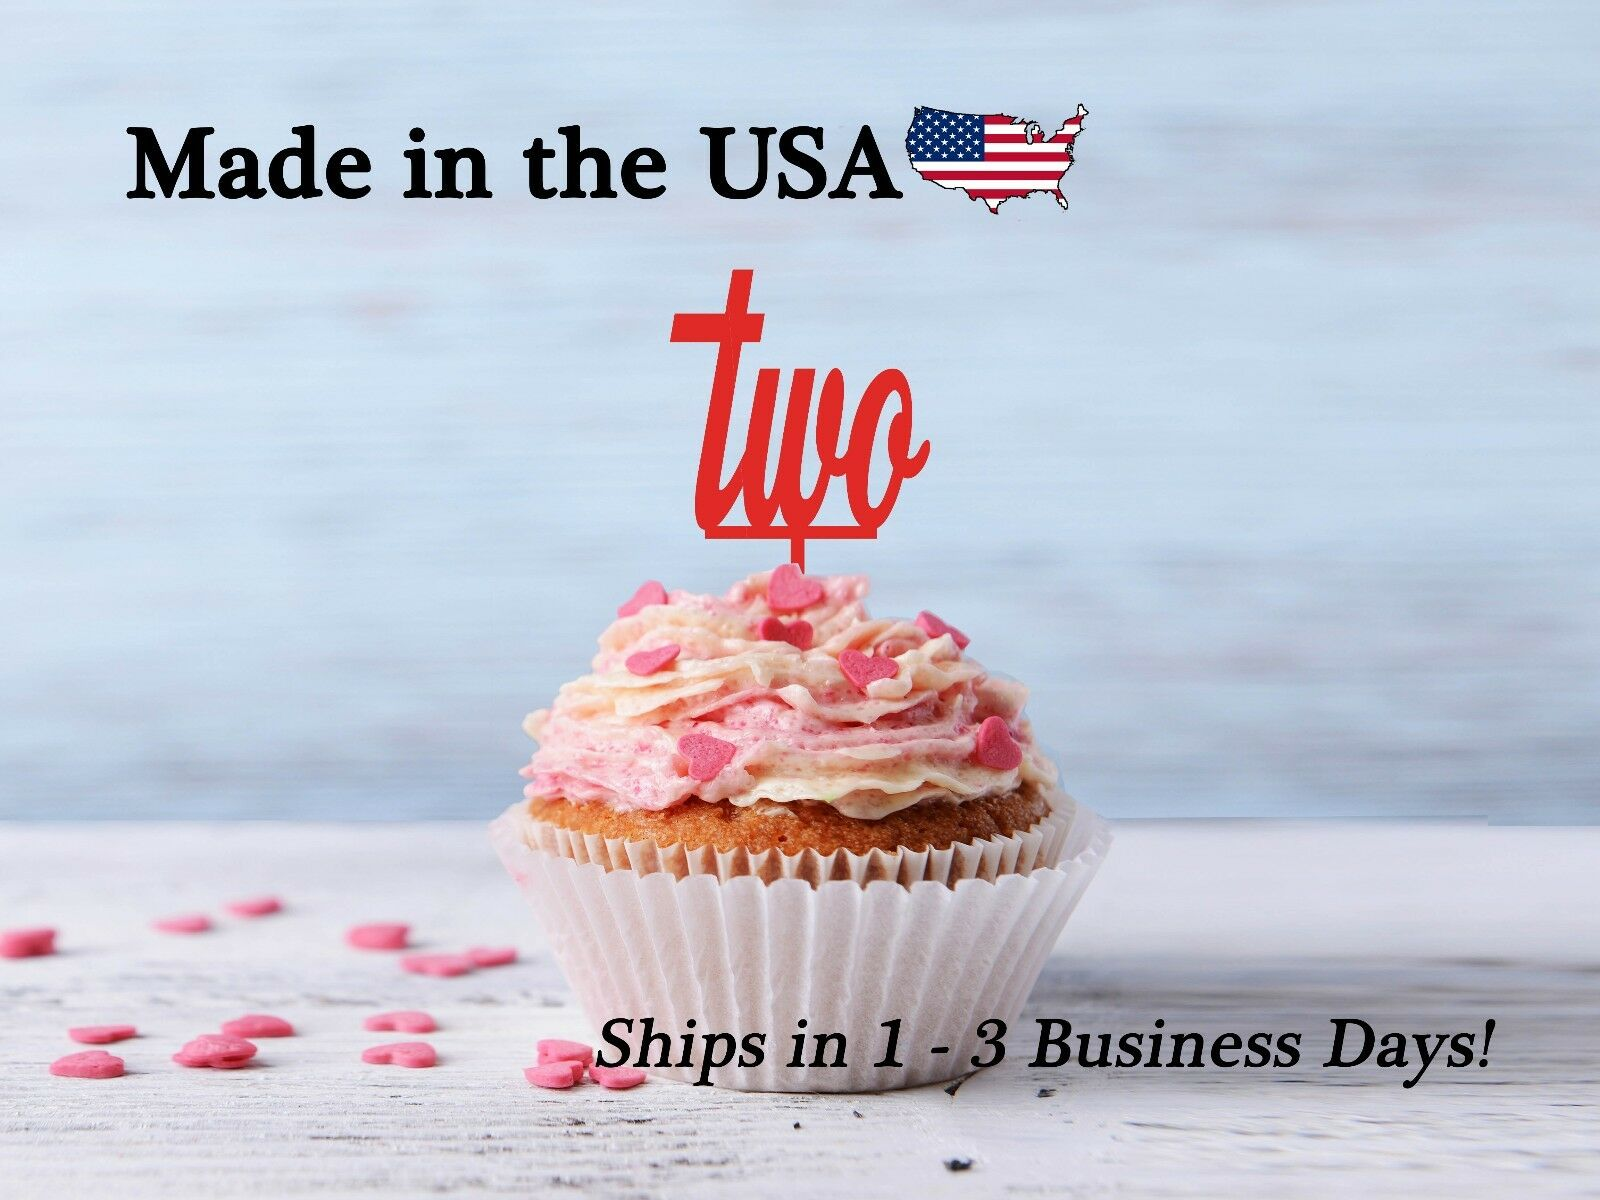 Second Birthday 2nd Cupcake Topper LCT1010 Decor Ogedha352 Cake Toppers